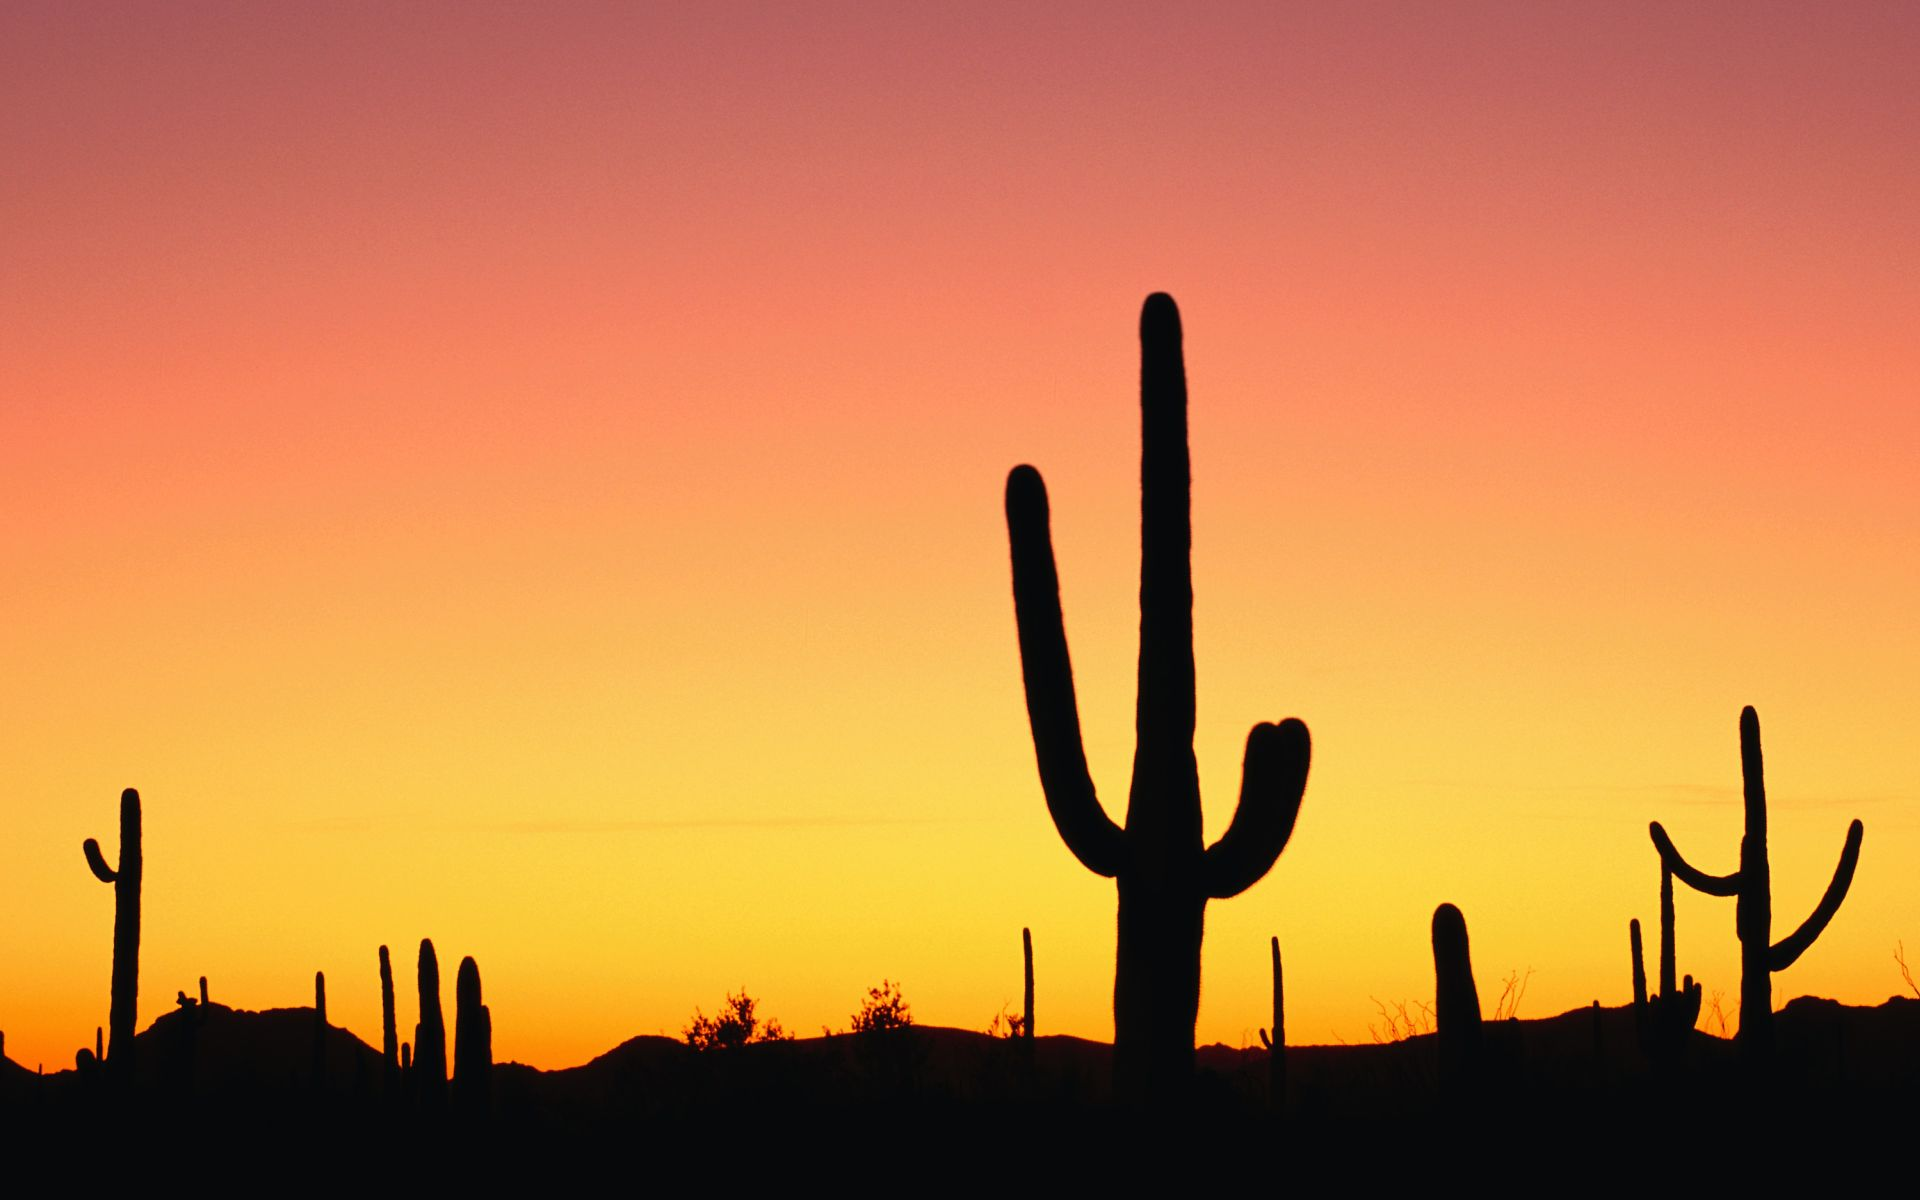 arizona sunset wallpaper 30130